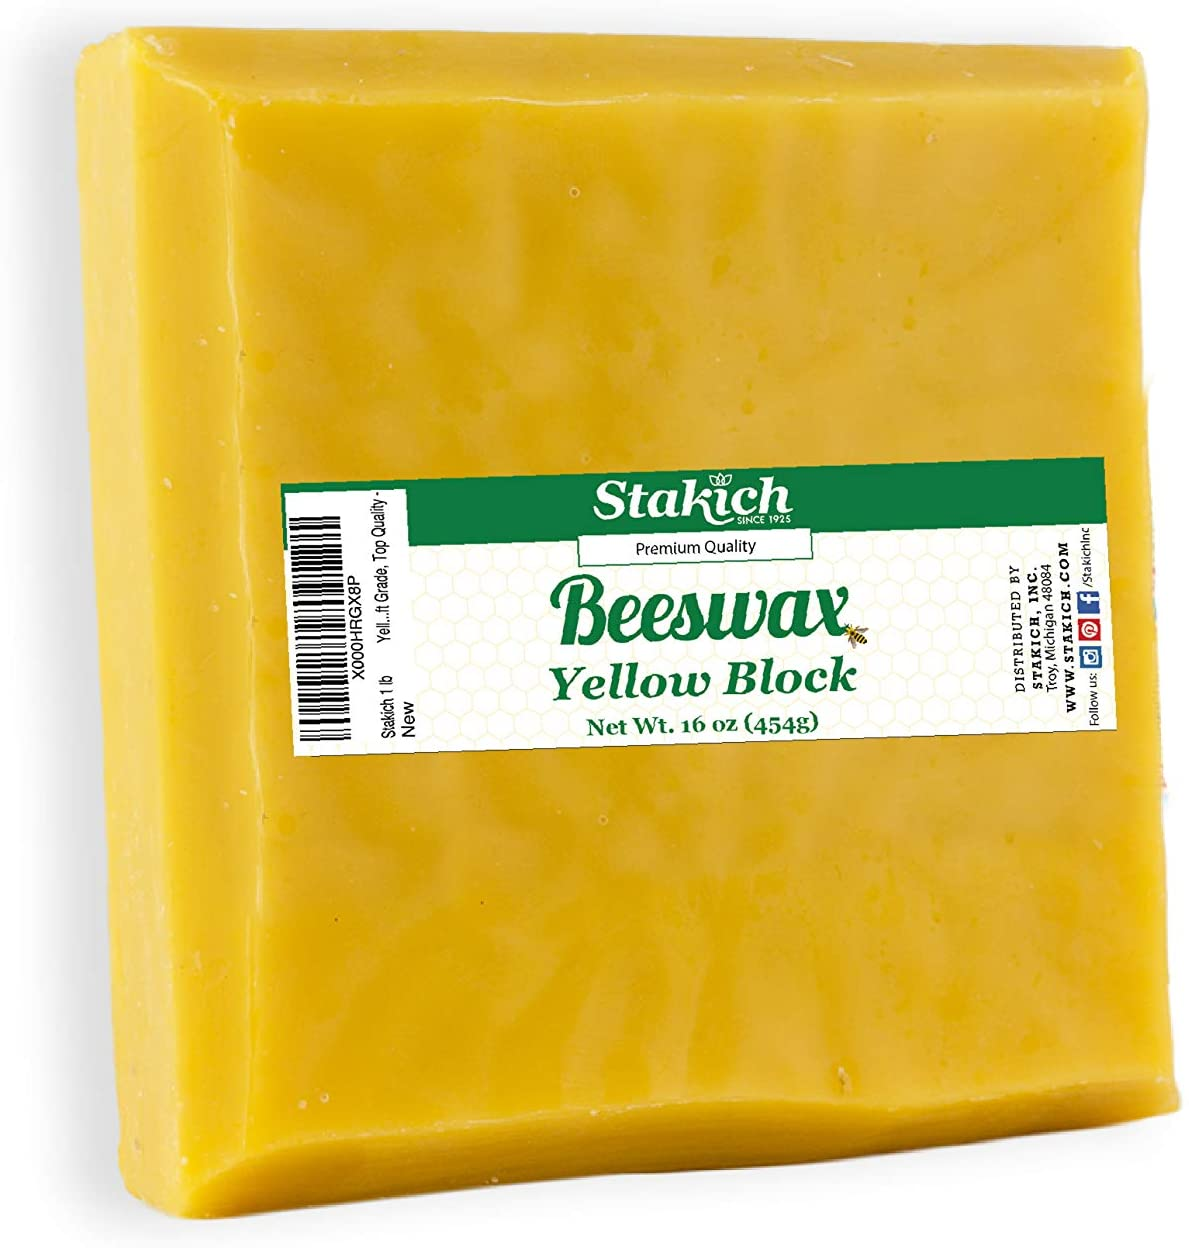 Stakich Yellow Beeswax Block - Natural, Triple Filtered - 1 Pound